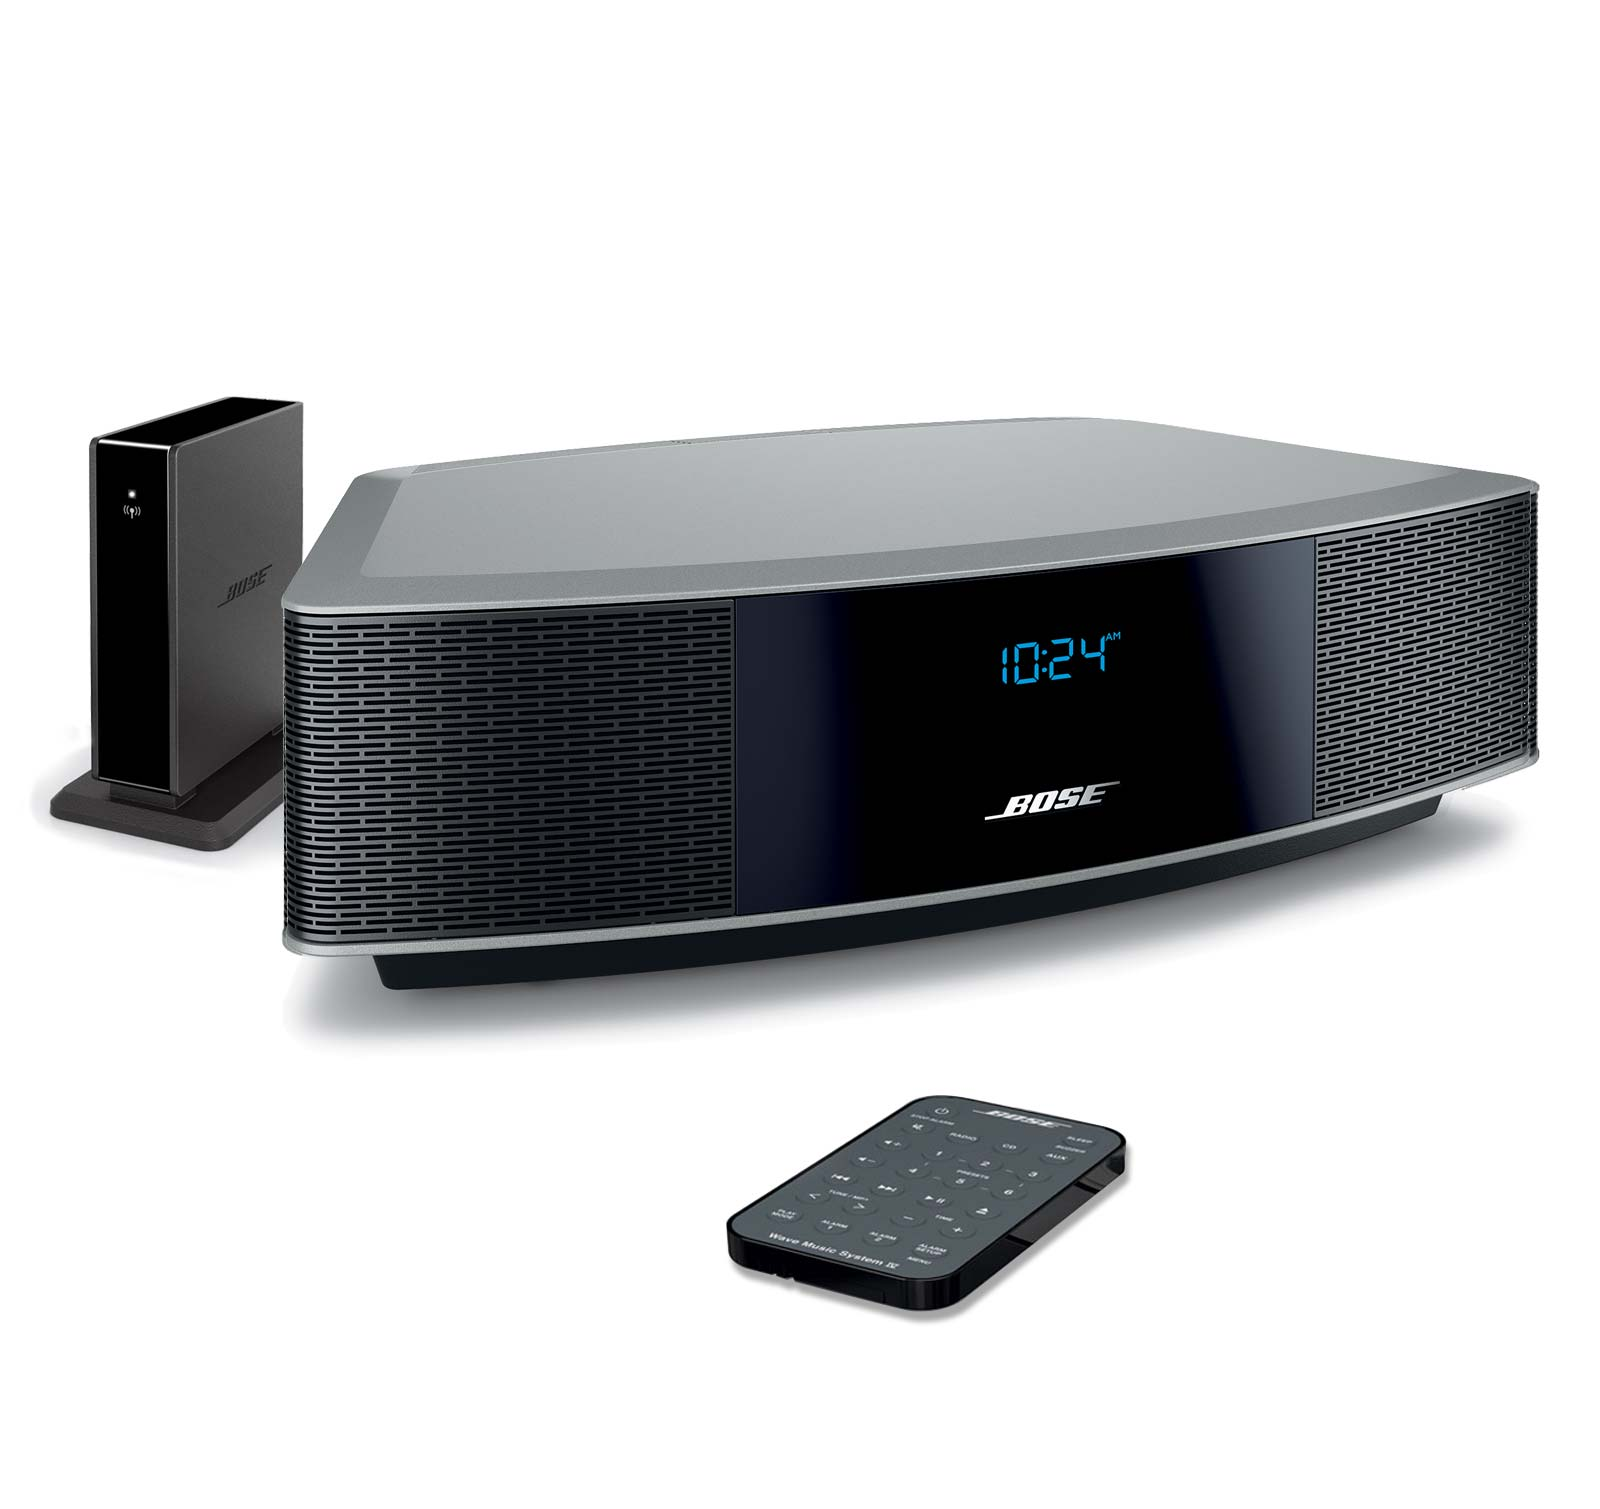 bose wave radio iv silver bundle radio bluetooth adapter. Black Bedroom Furniture Sets. Home Design Ideas